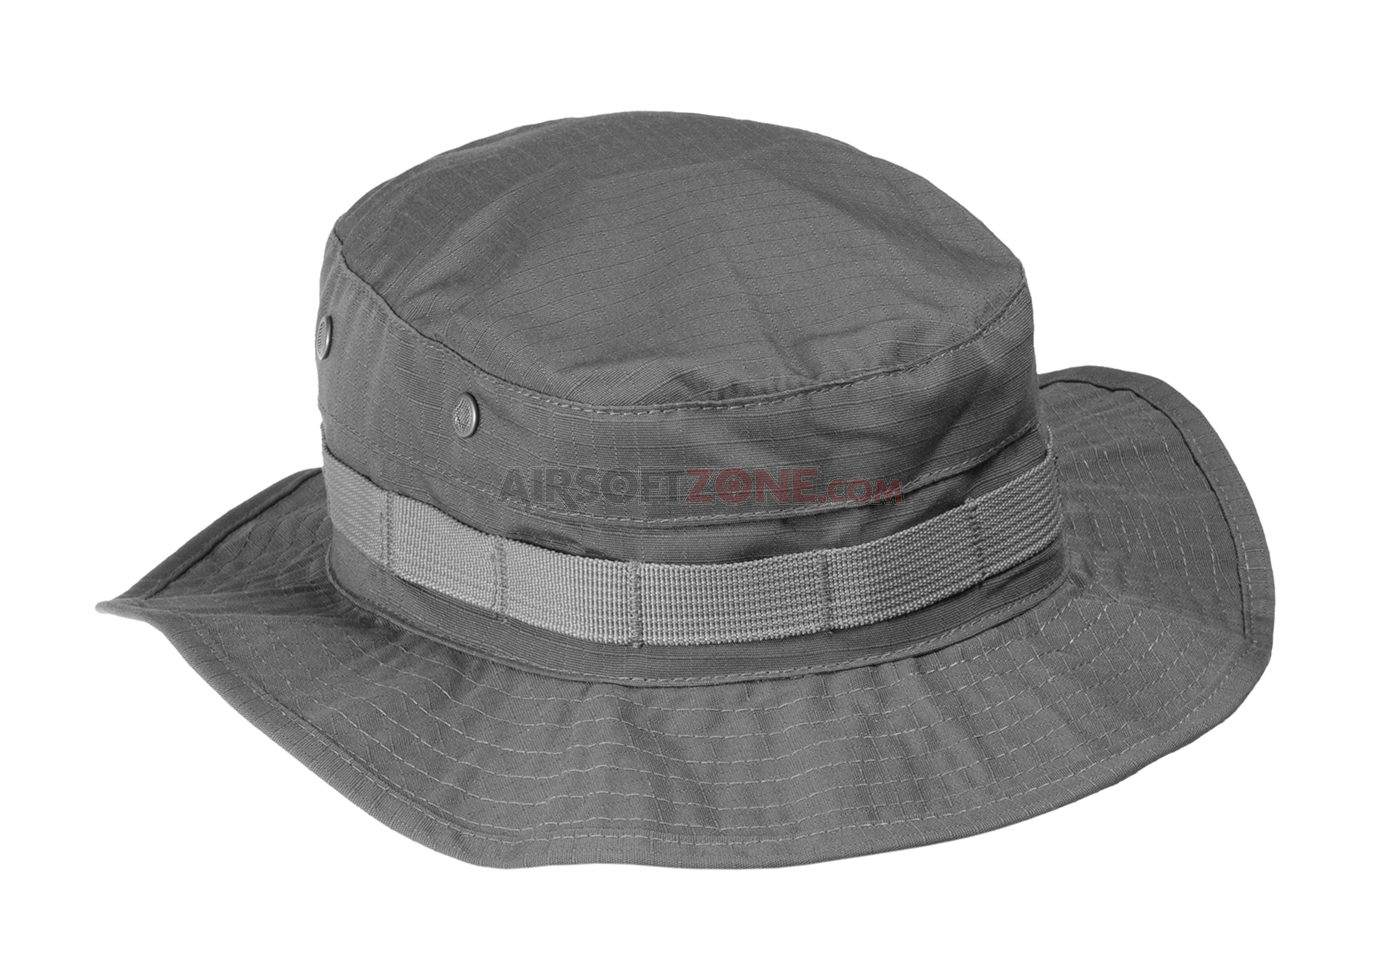 Boonie Hat Wolf Grey (Invader Gear) 57   M - Boonies - Headwear ... 3912377a7e8